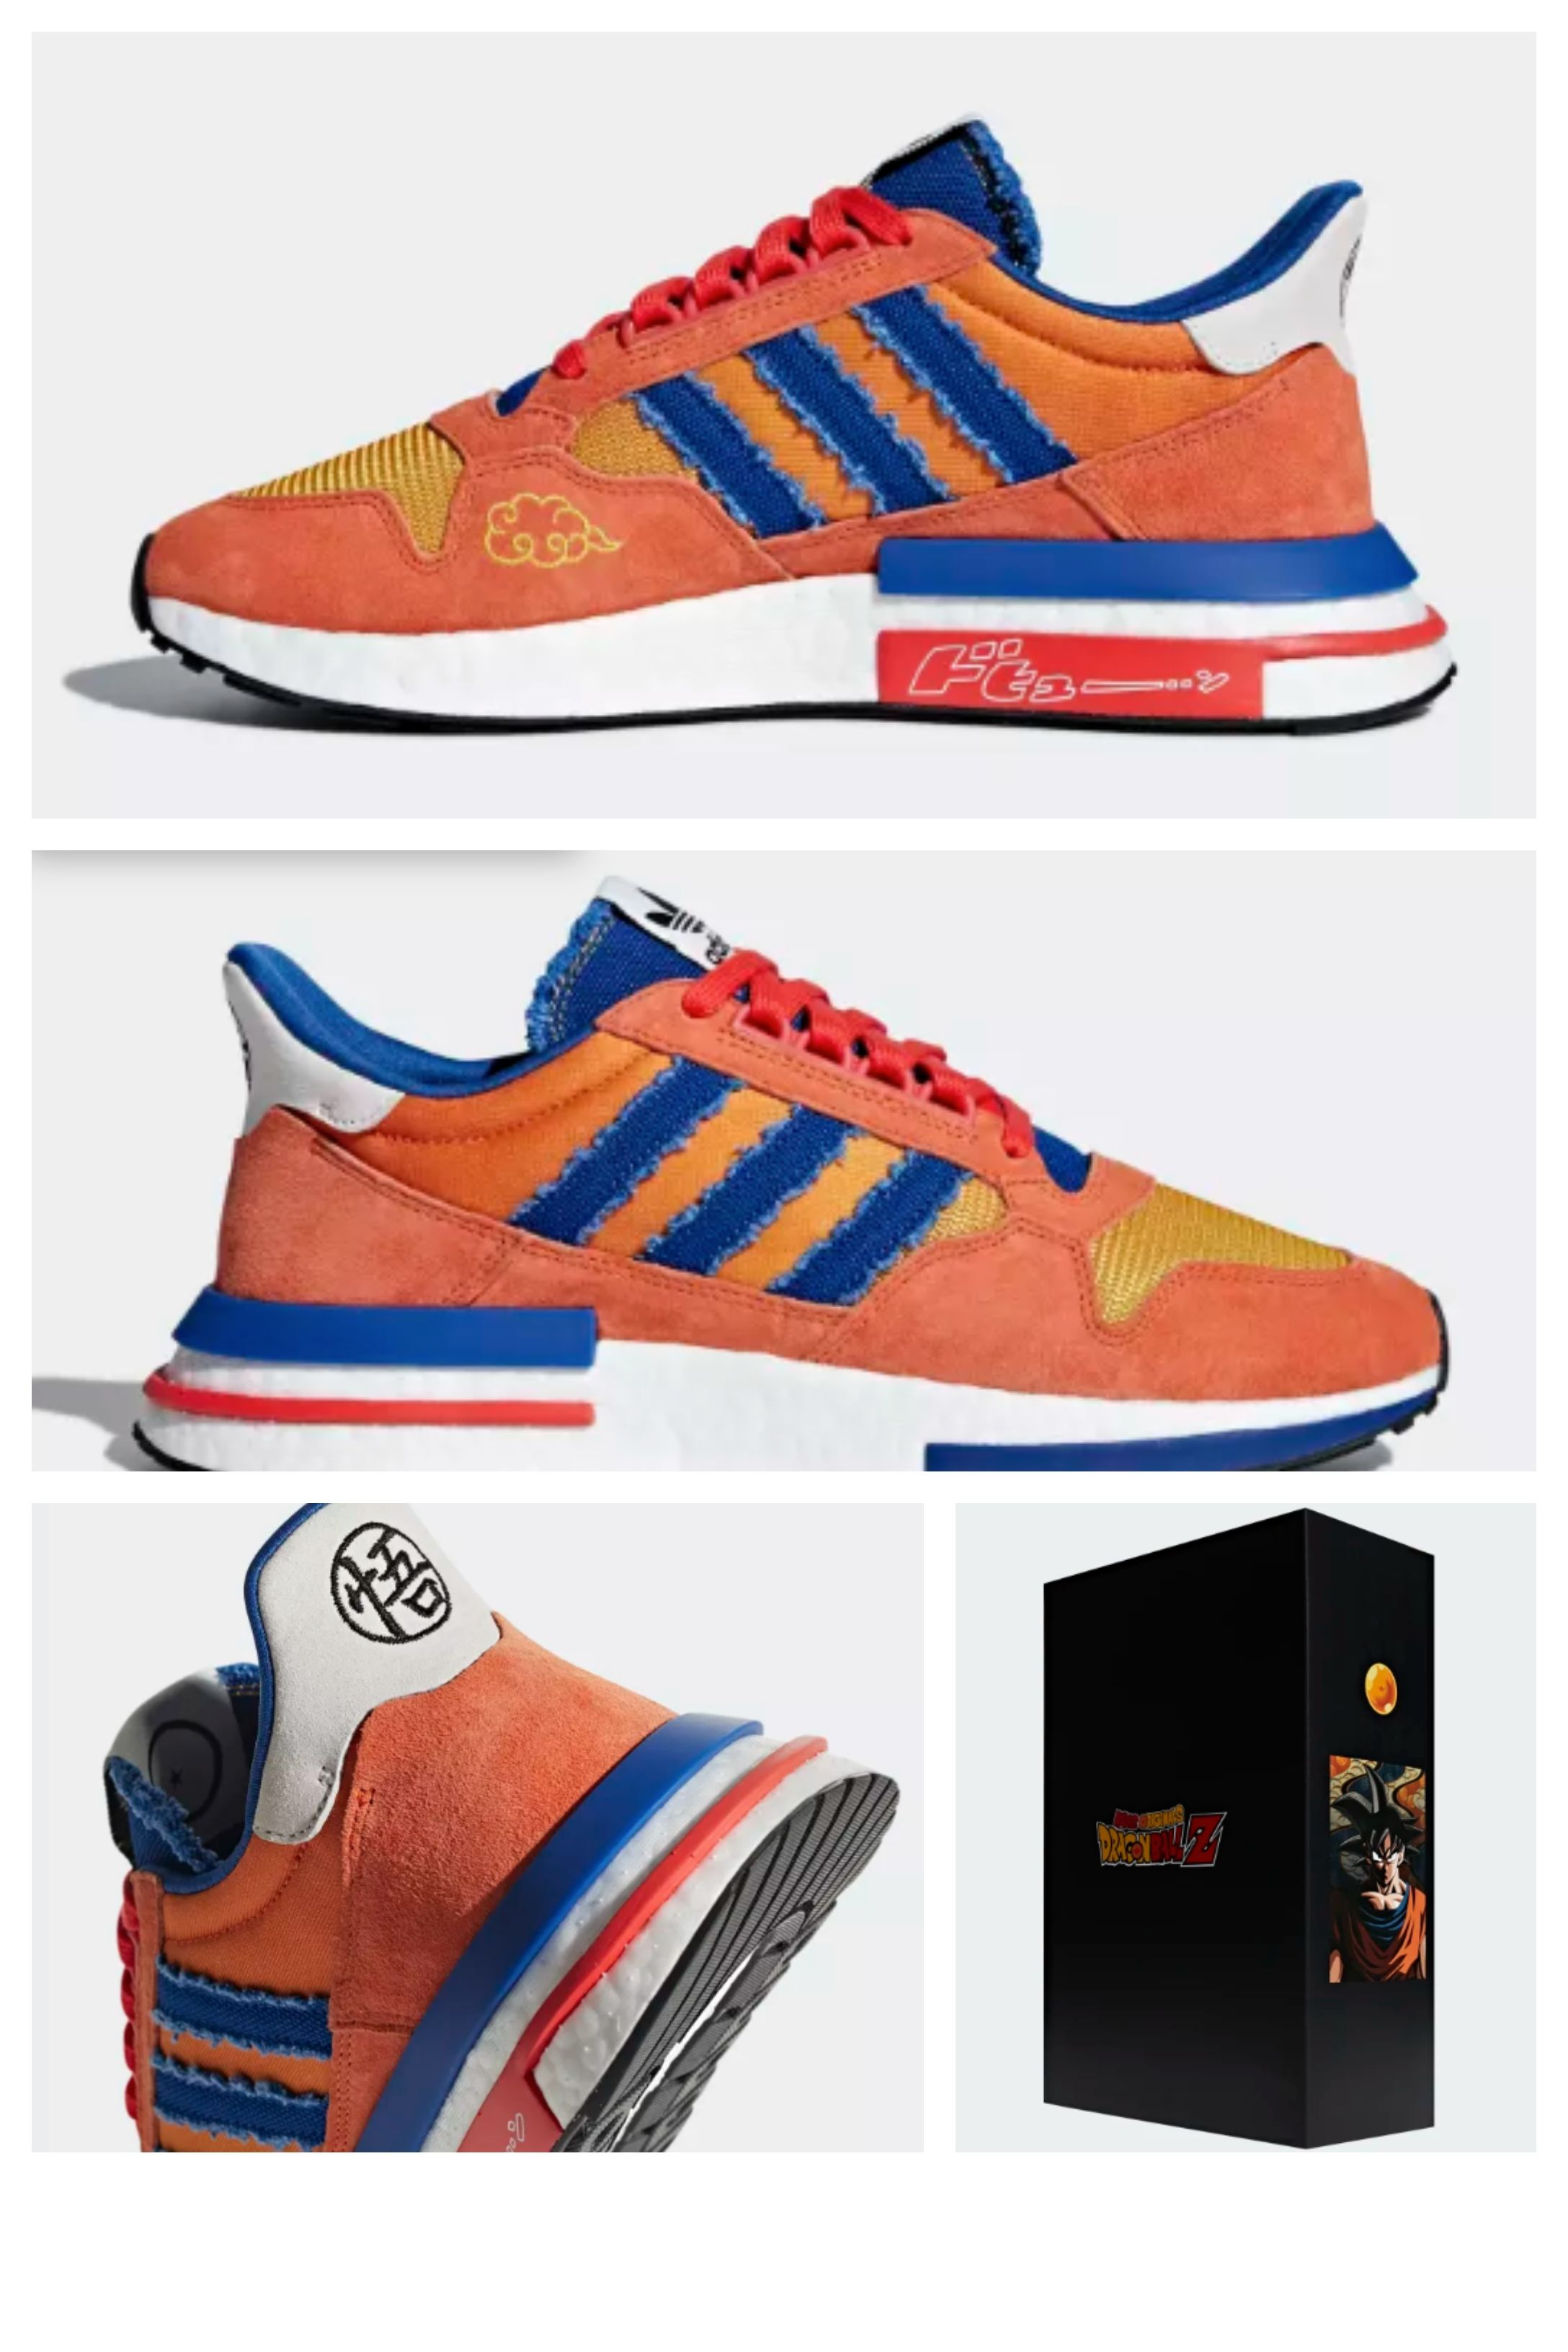 65f37a87b Dragonball Z ZX 500 RM Shoes in 2019